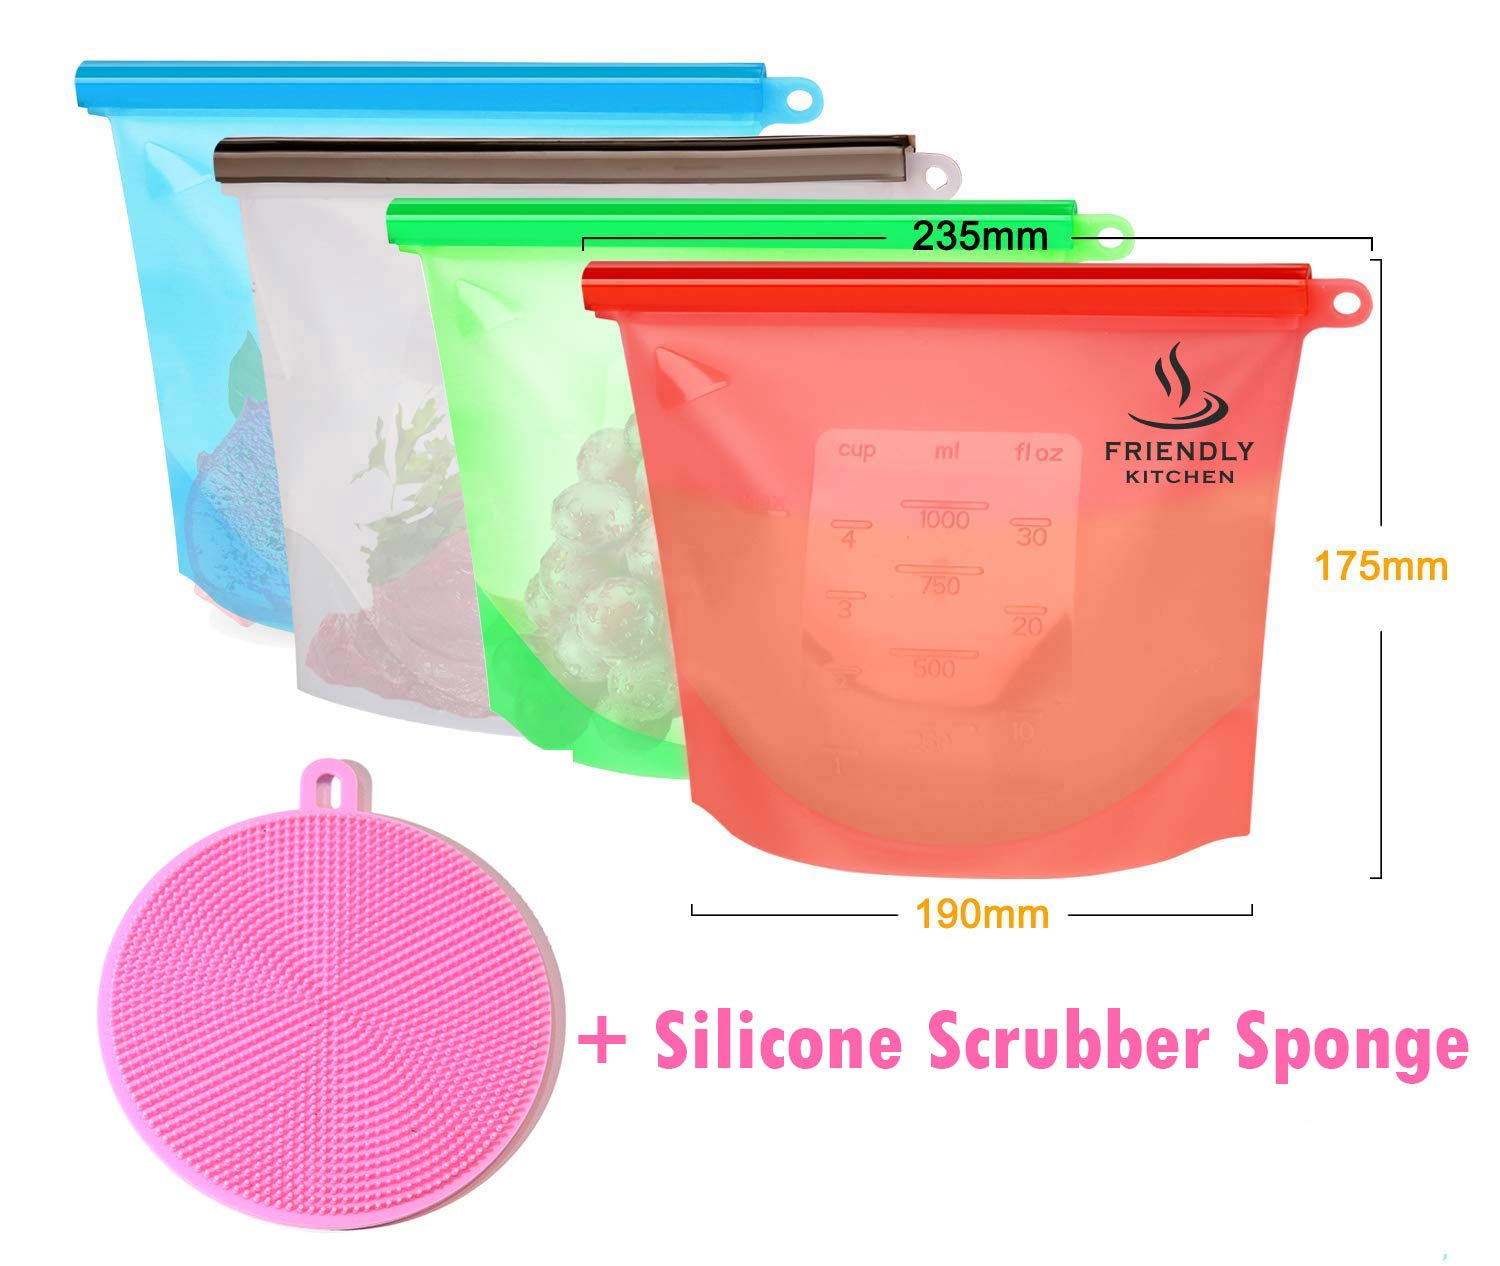 FRIENDLY KITCHEN Reusable Silicone Food Storage Bag 4 Pack - Food Preservation Bag Airtight Seal Food Storage Leakproof Airtight Resealeable Food Saver + 1 Silicone Scrubber Sponge